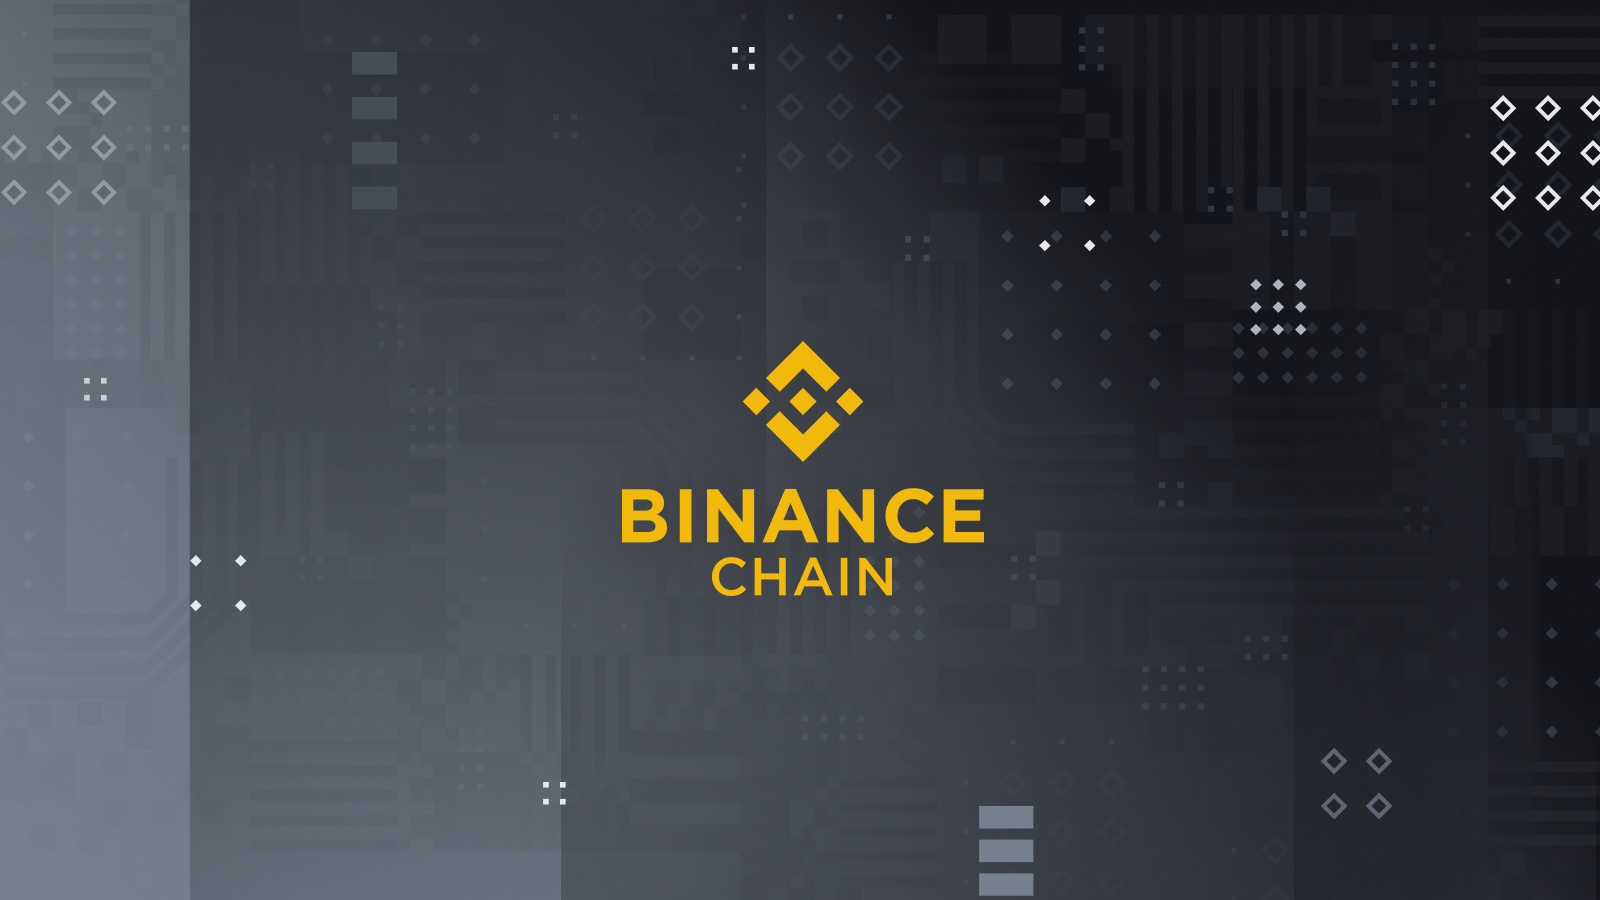 A New Content Platform for Binance Chain